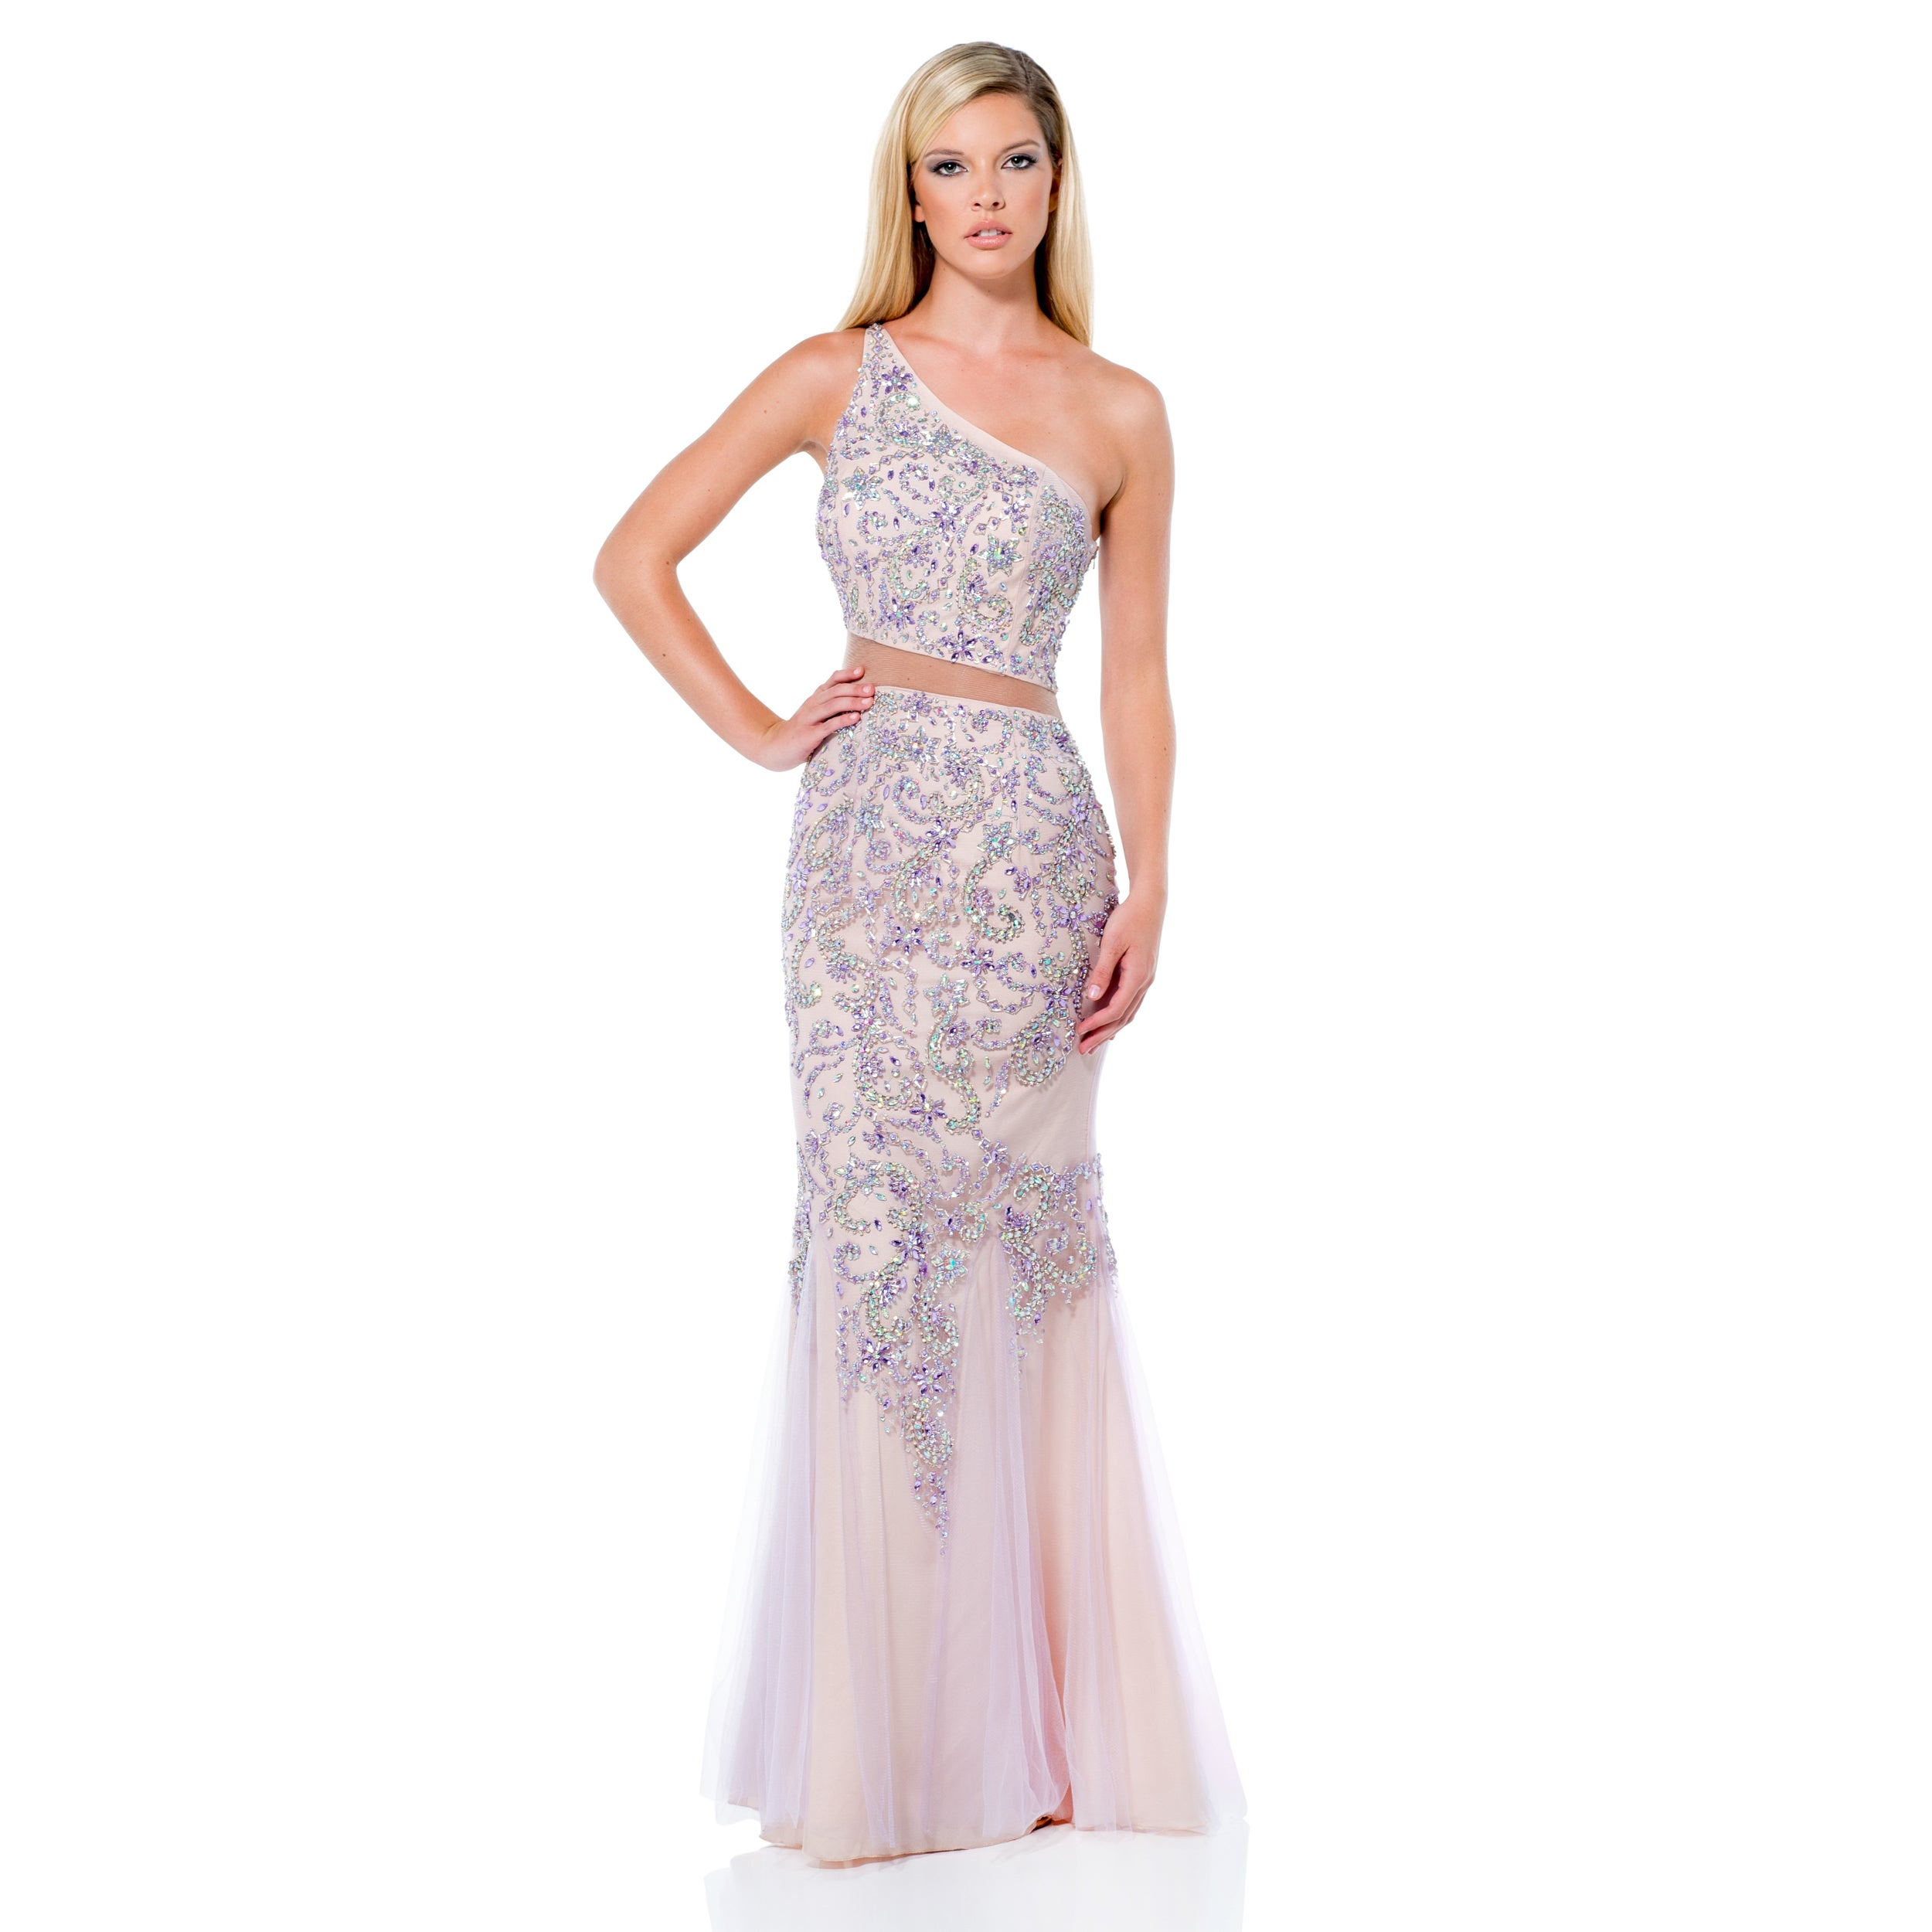 ddff5367a637 Shop Terani Couture Pink Two Piece Long Prom Gown with Asymmetrical Neck -  Free Shipping Today - Overstock - 11446469